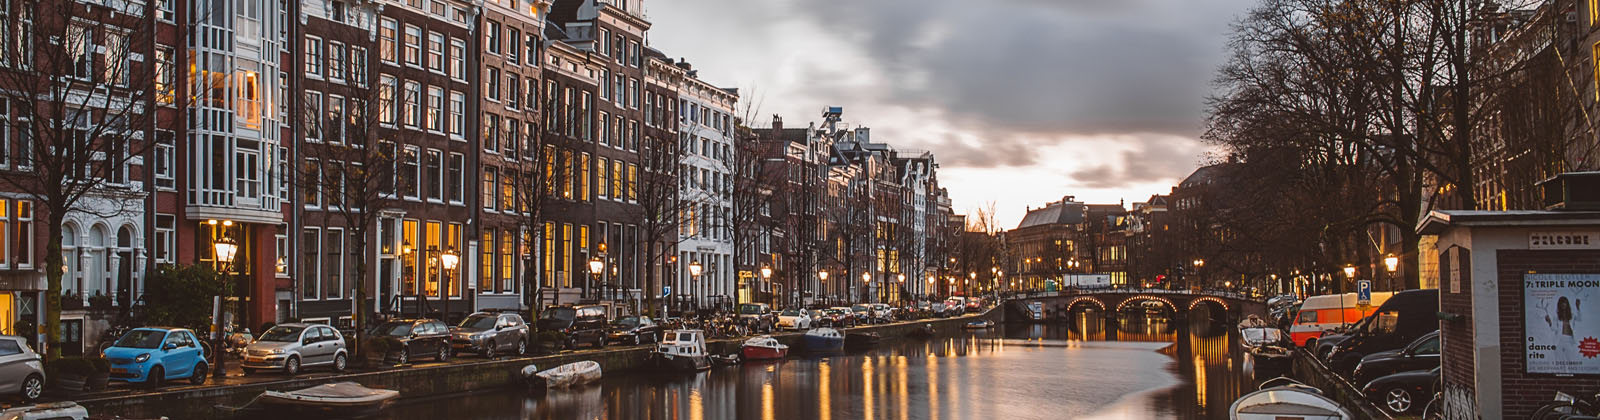 Tour operator - Hotel services - Amsterdam